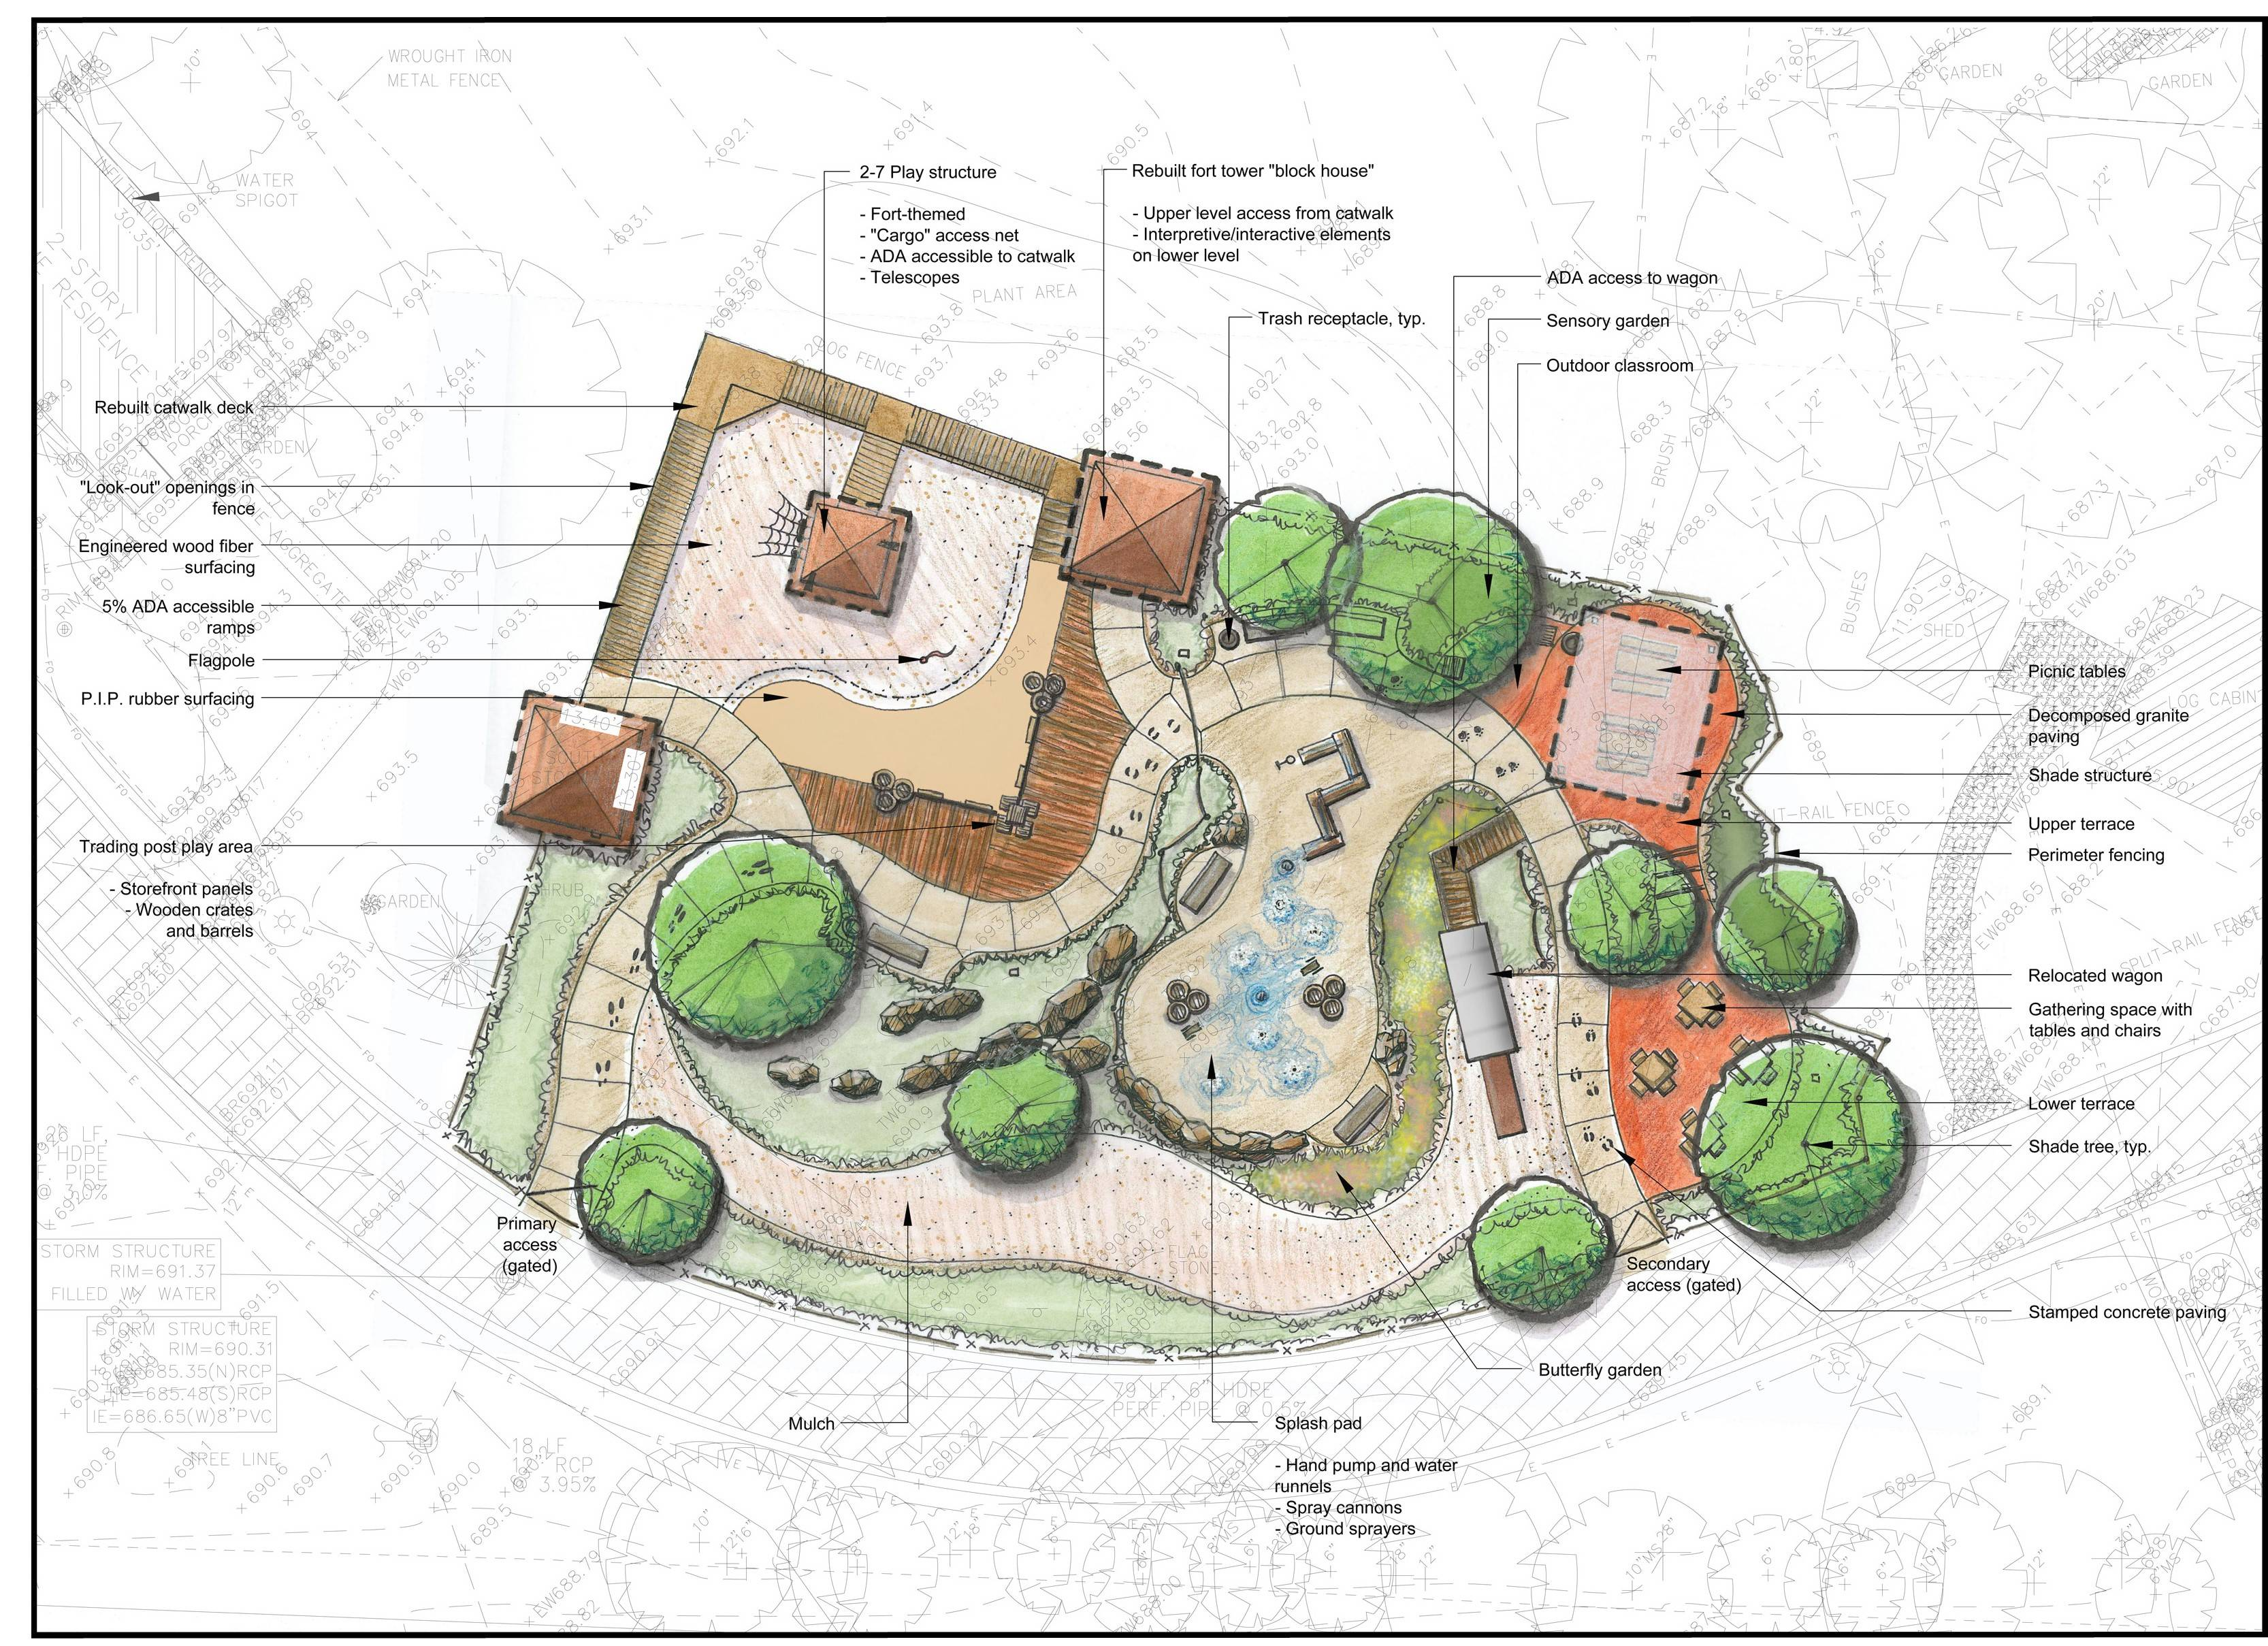 Construction is expected to begin soon on the Fort Payne Learning Playscape at Naper Settlement, which will offer water, nature and climbing play features beginning as soon as this summer.